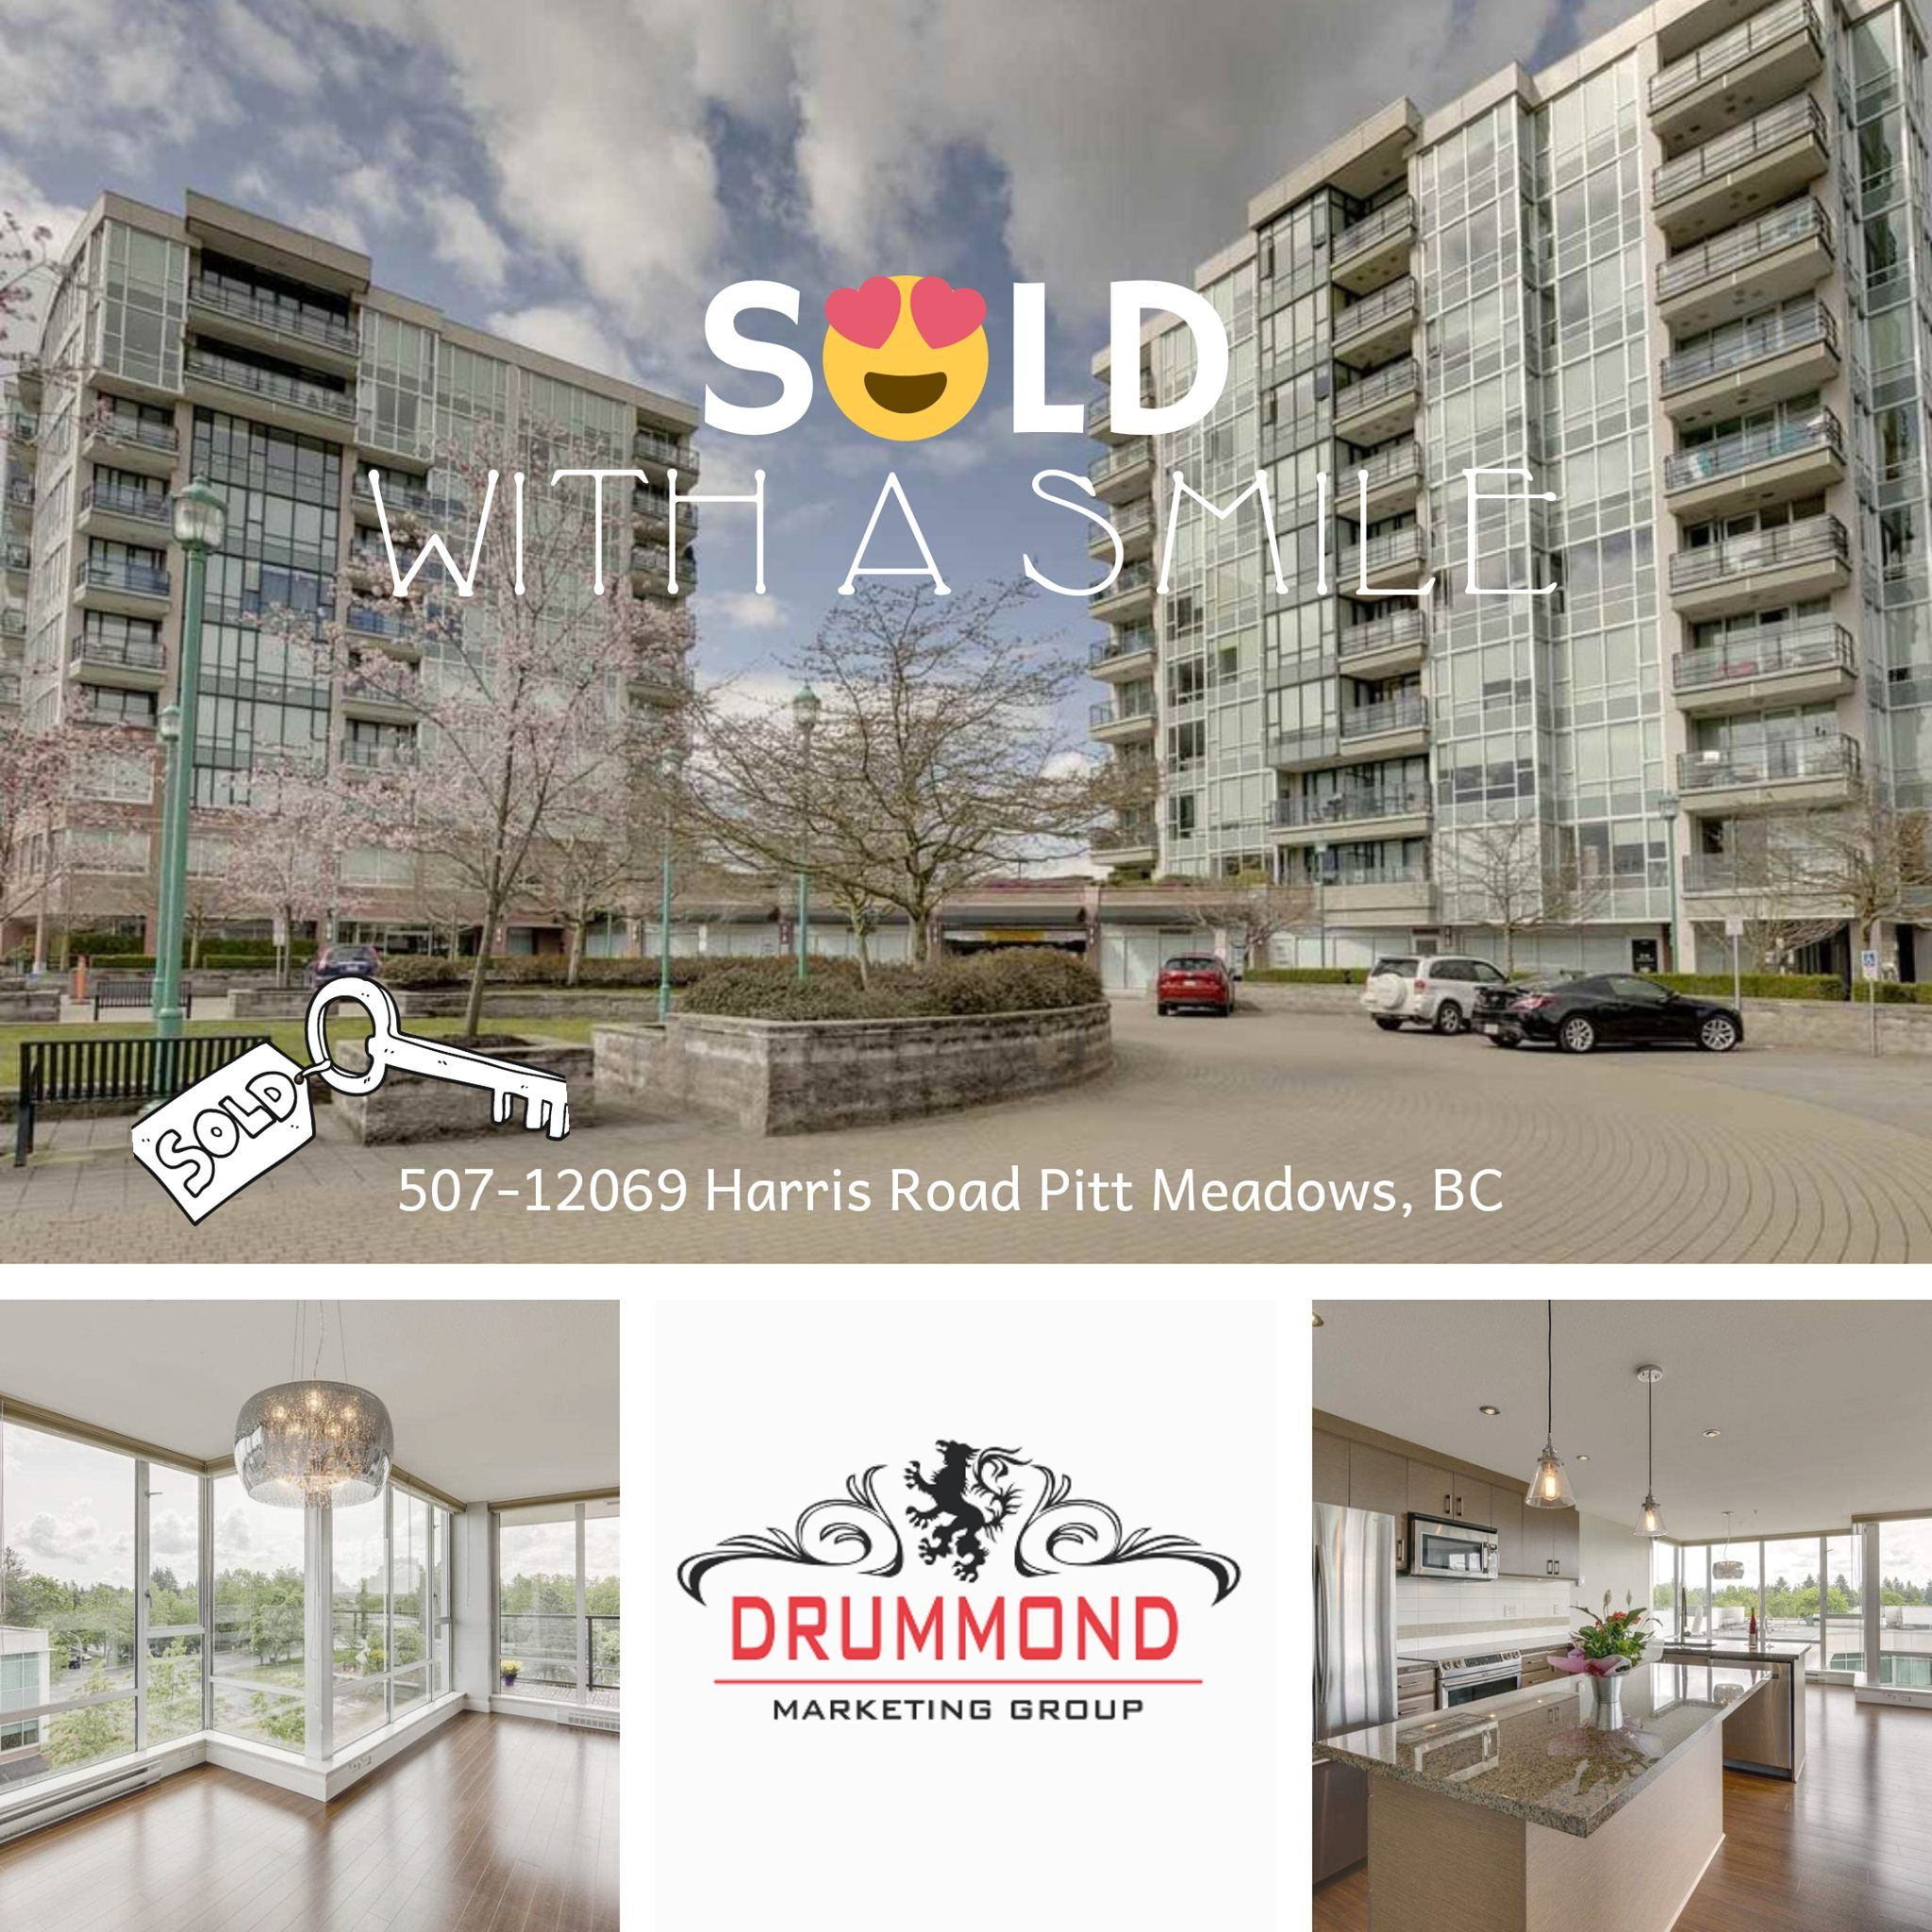 Main Photo: 507 12069 Harris Road in Pitt Meadows: Mid Meadows Condo for sale : MLS®# R2476865